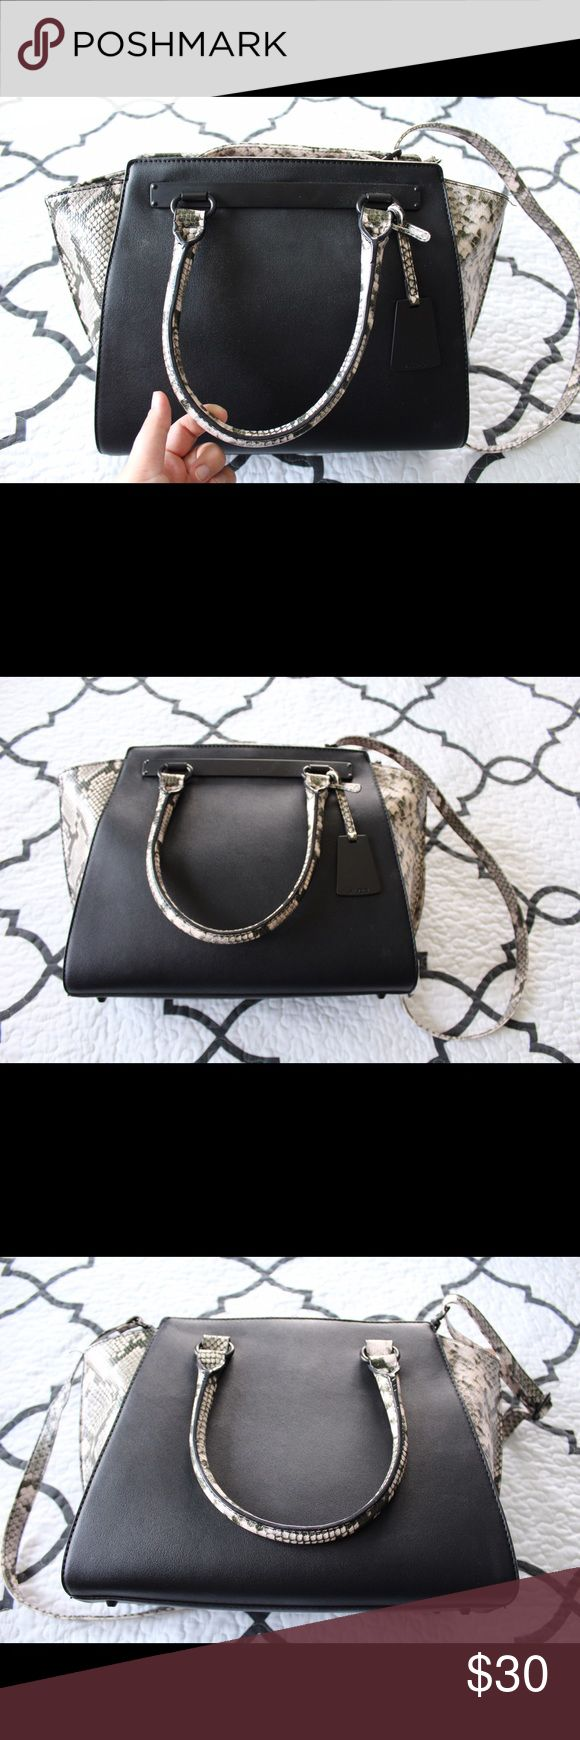 Aldo Macnutt Tote Bag A brand new Aldo tote bag with a ton of space inside! Barely used once or twice and then sat in my closet for two years in excellent condition! It is a black leather color-block bag with faux snakeskin details. Aldo Bags Shoulder Bags